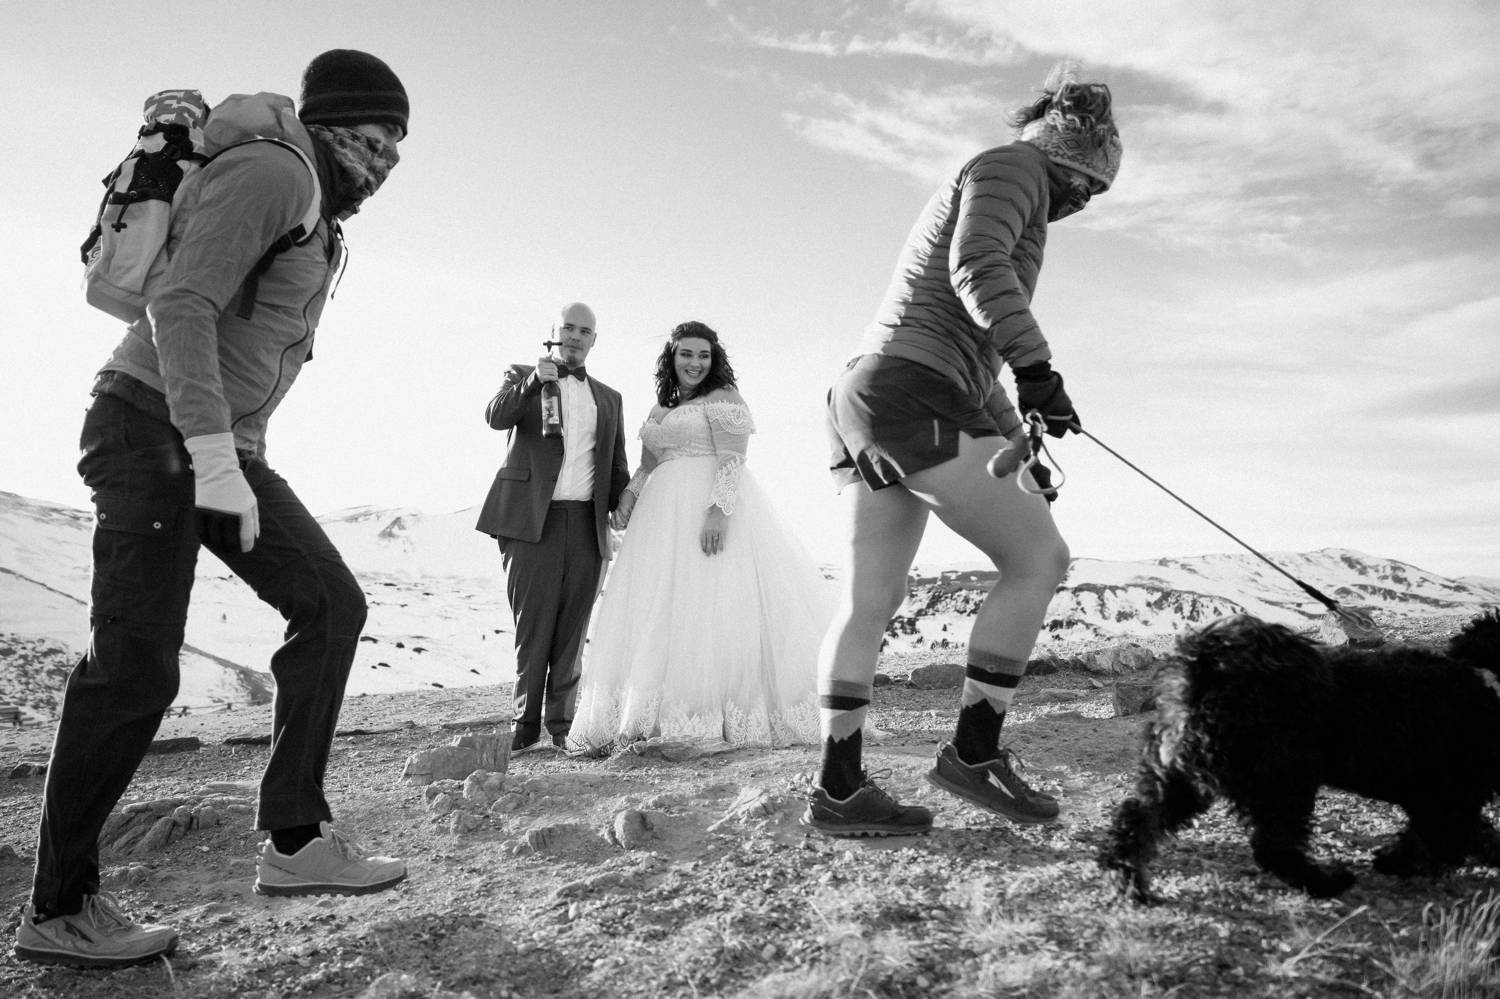 Customer Loyalty: By Nick Sparks, a bride and groom stand back as hikers climb past them with their dog leading the way.